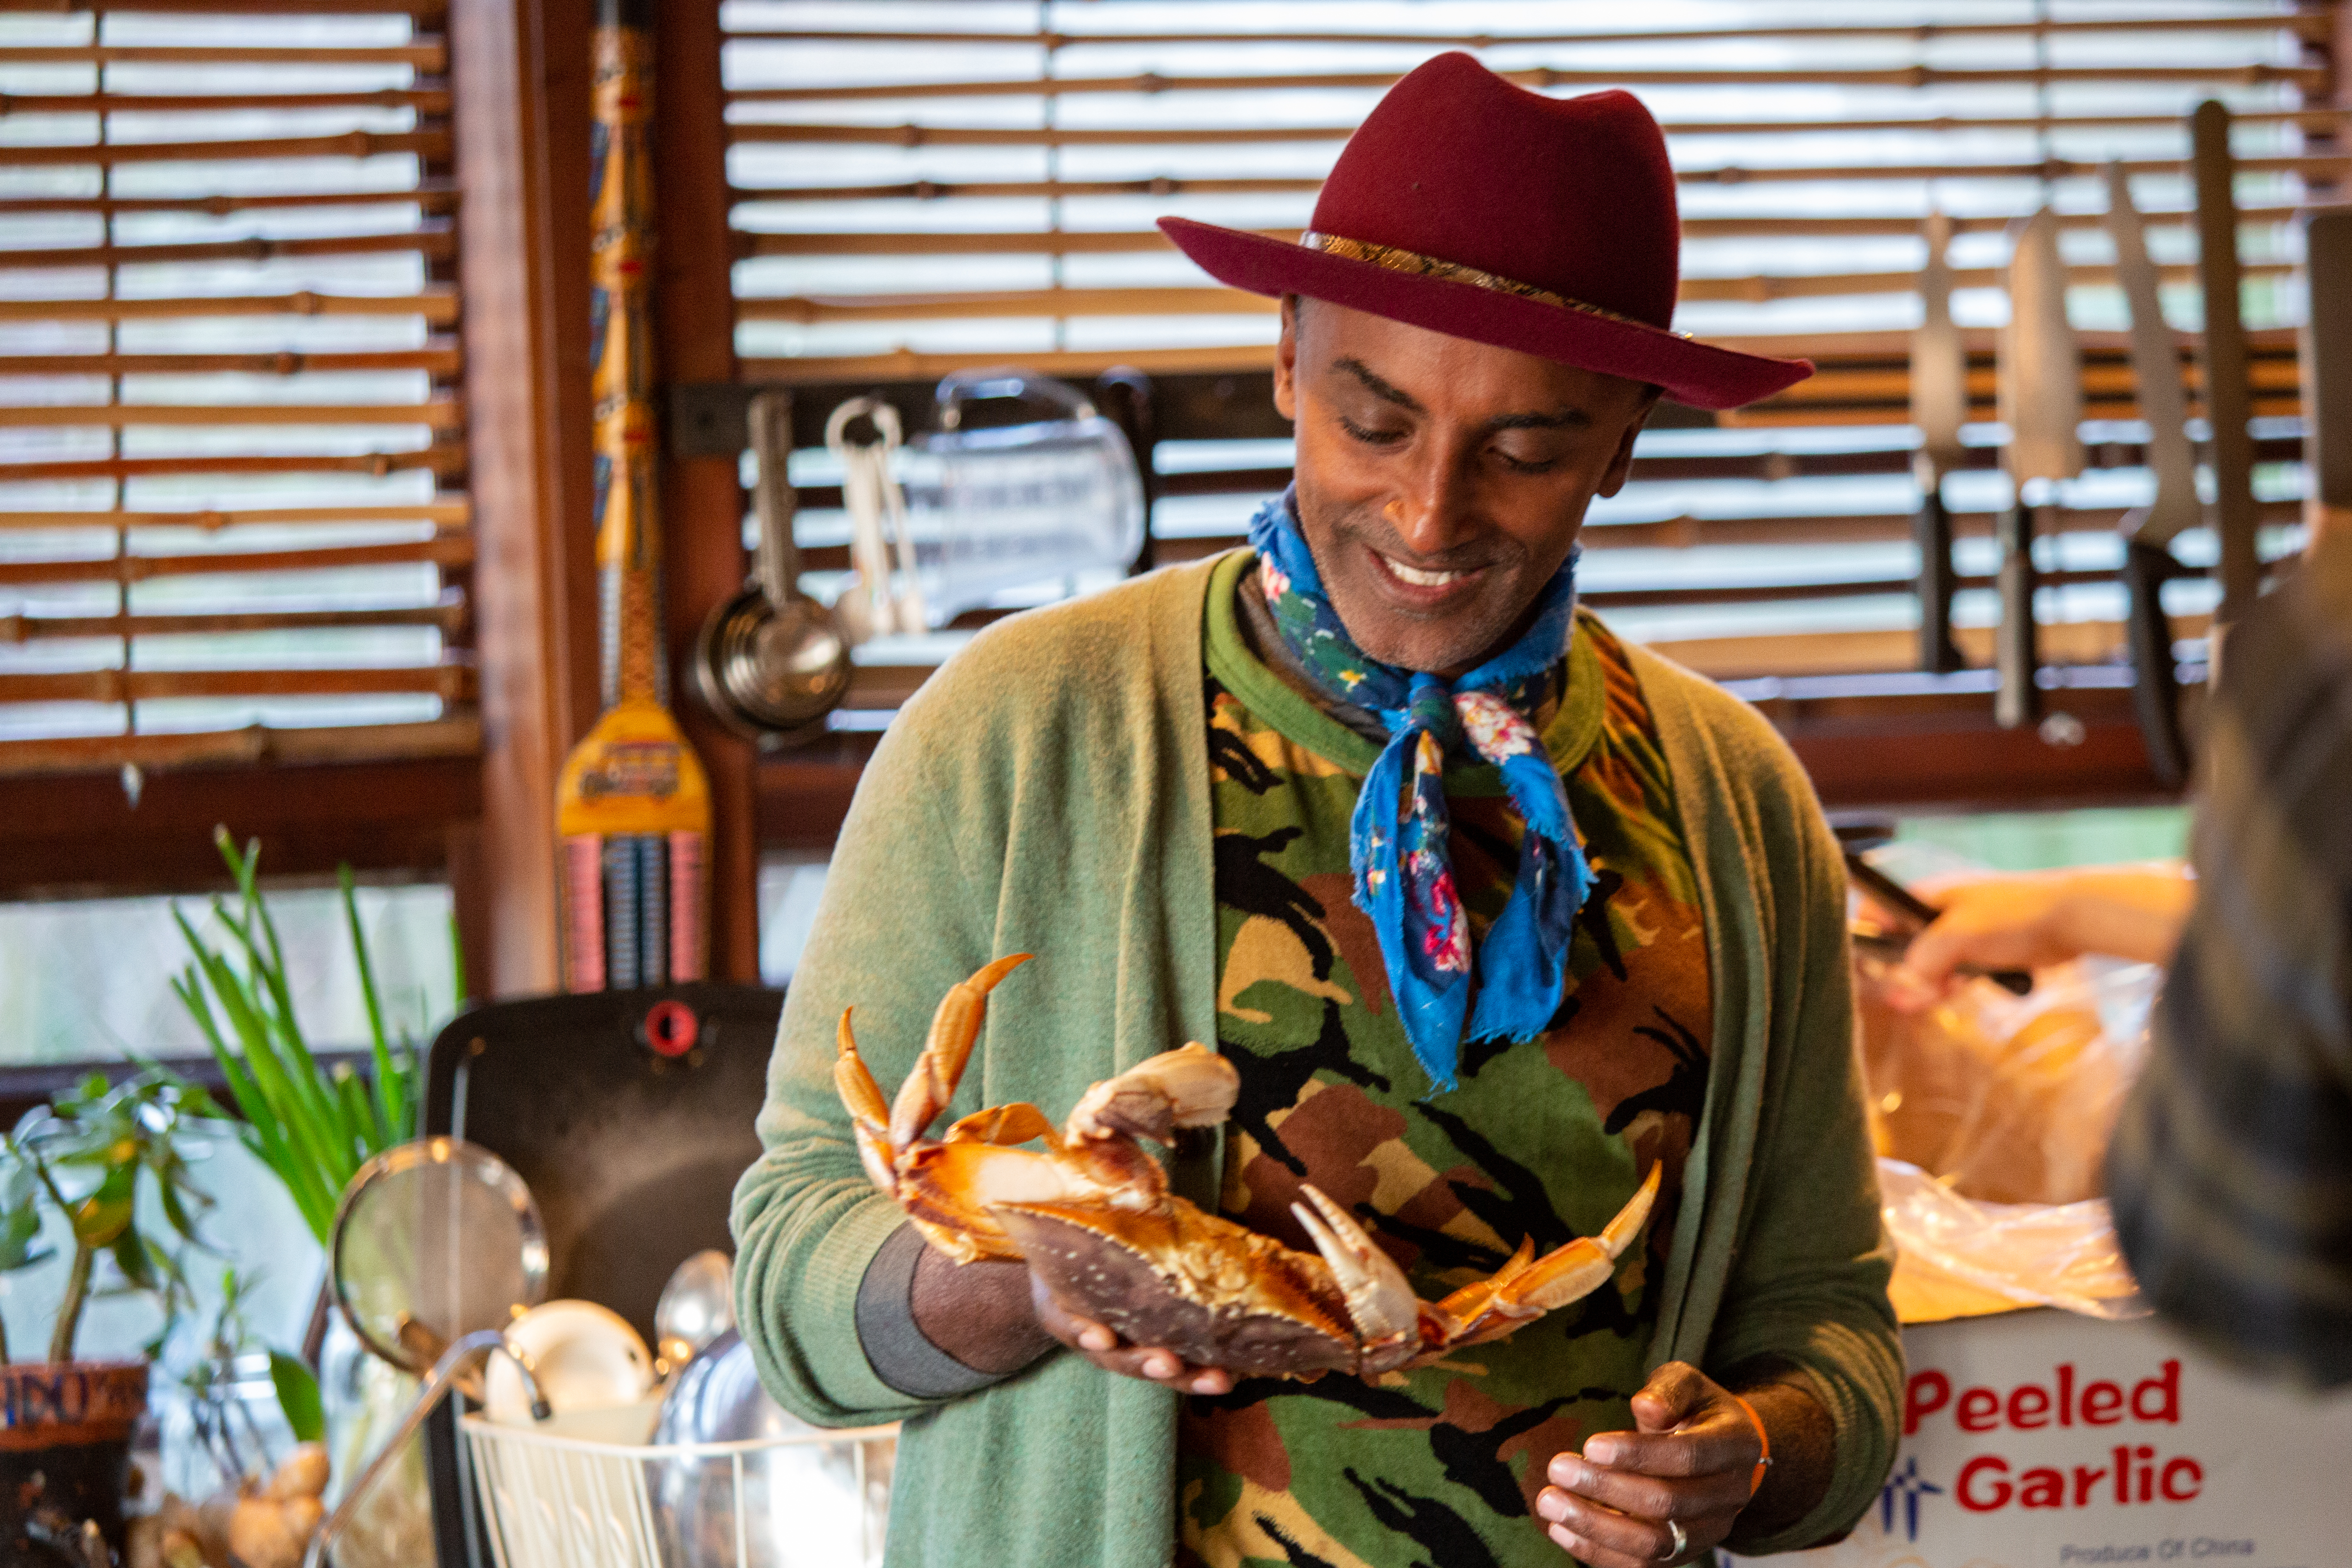 Host Marcus Samuelsson holding a crab in a home kitchen for the Seattle episode of No Passport Required.